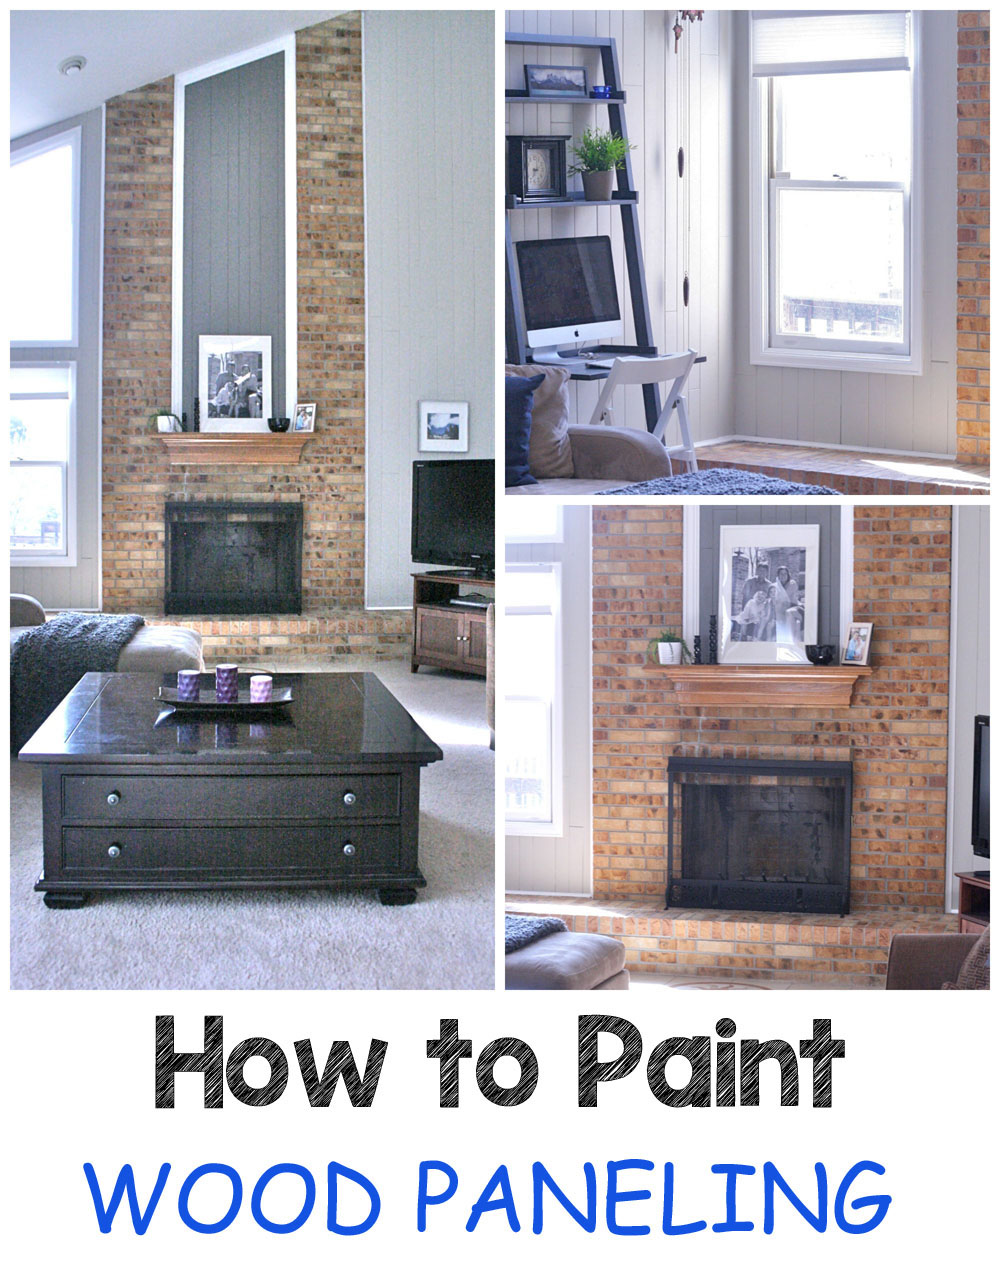 to be as helpful as possible i tried to think of some questions you might have about how to paint wood paneling - Painted Wood Home 2015